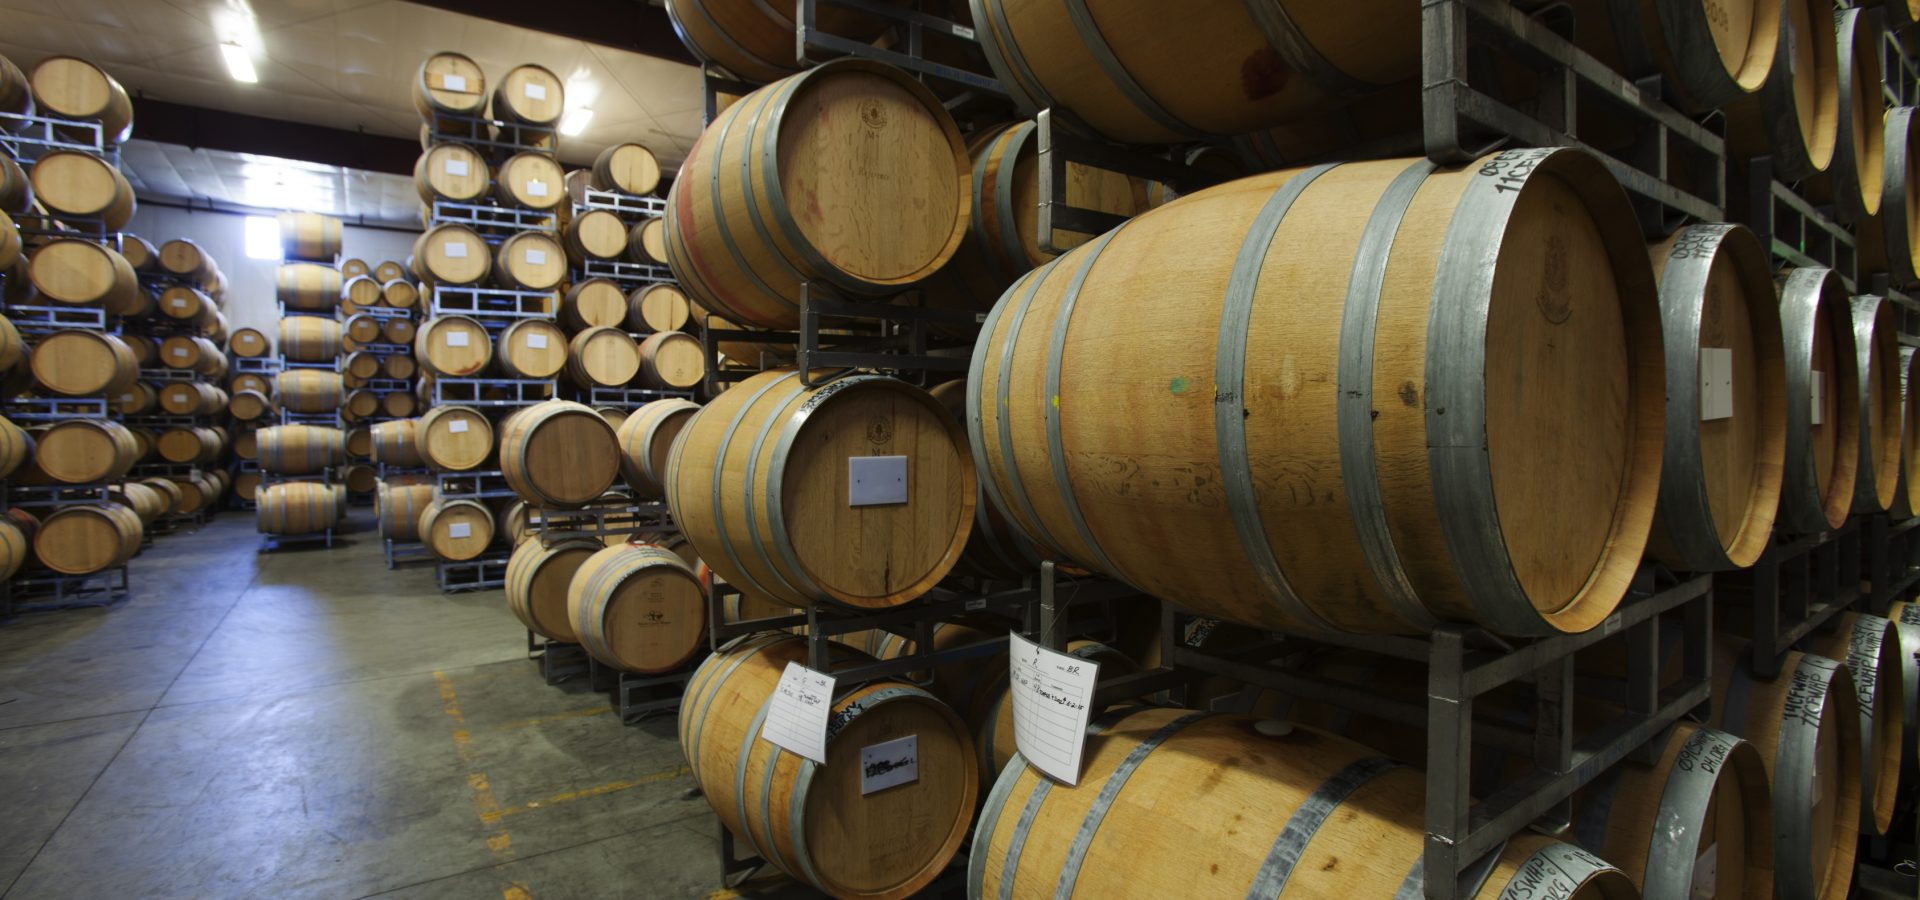 Wine barrels all lined up at South Coast Winery Resort